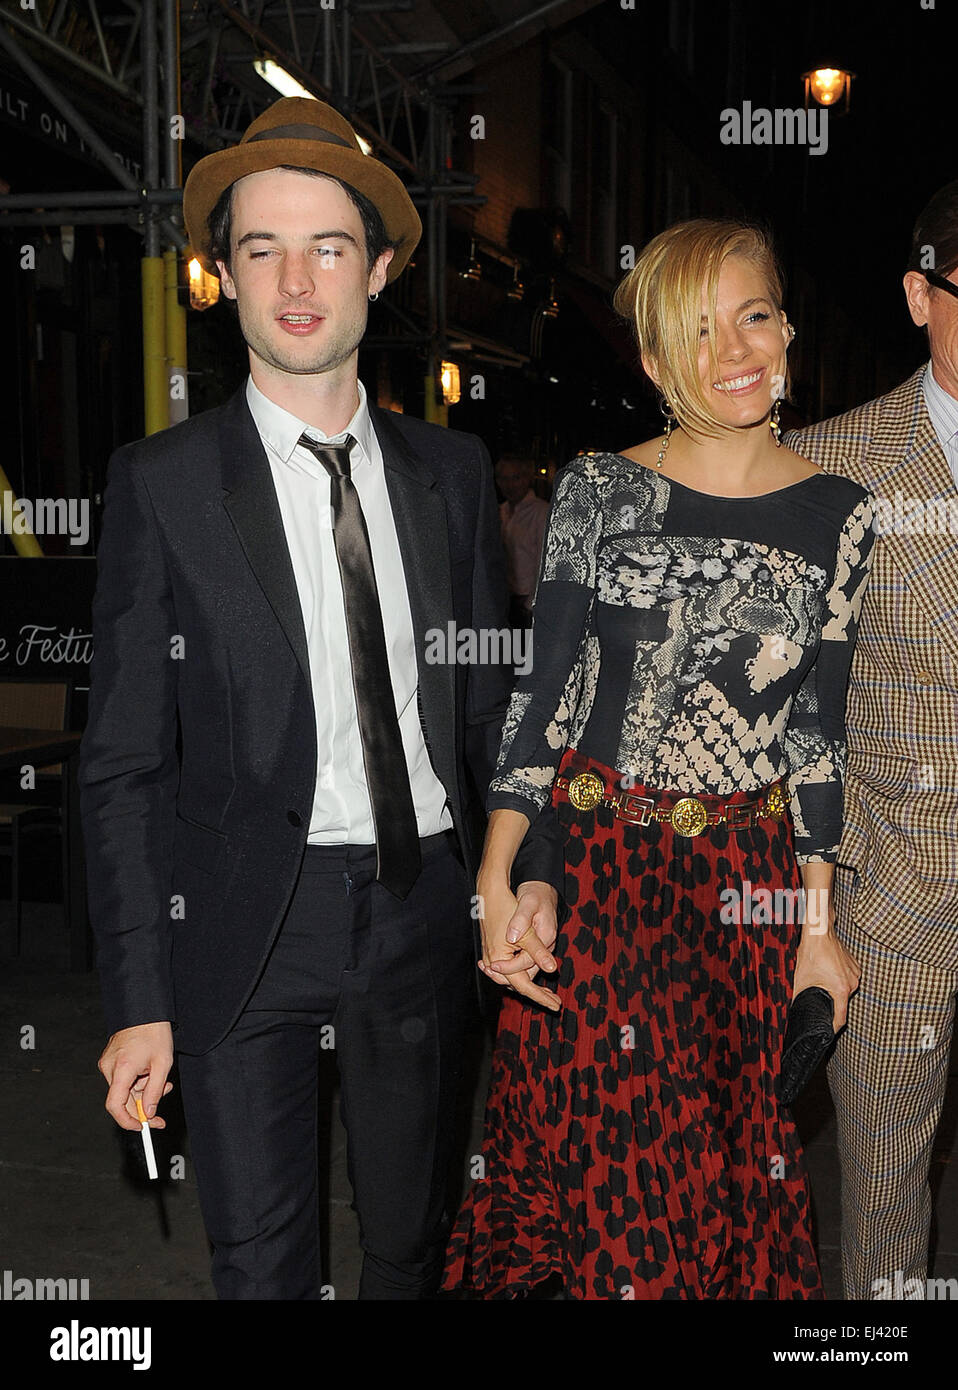 Tom sturridge Dating-GeschichteDating eines jüngeren Kerls in Ihren 30ern